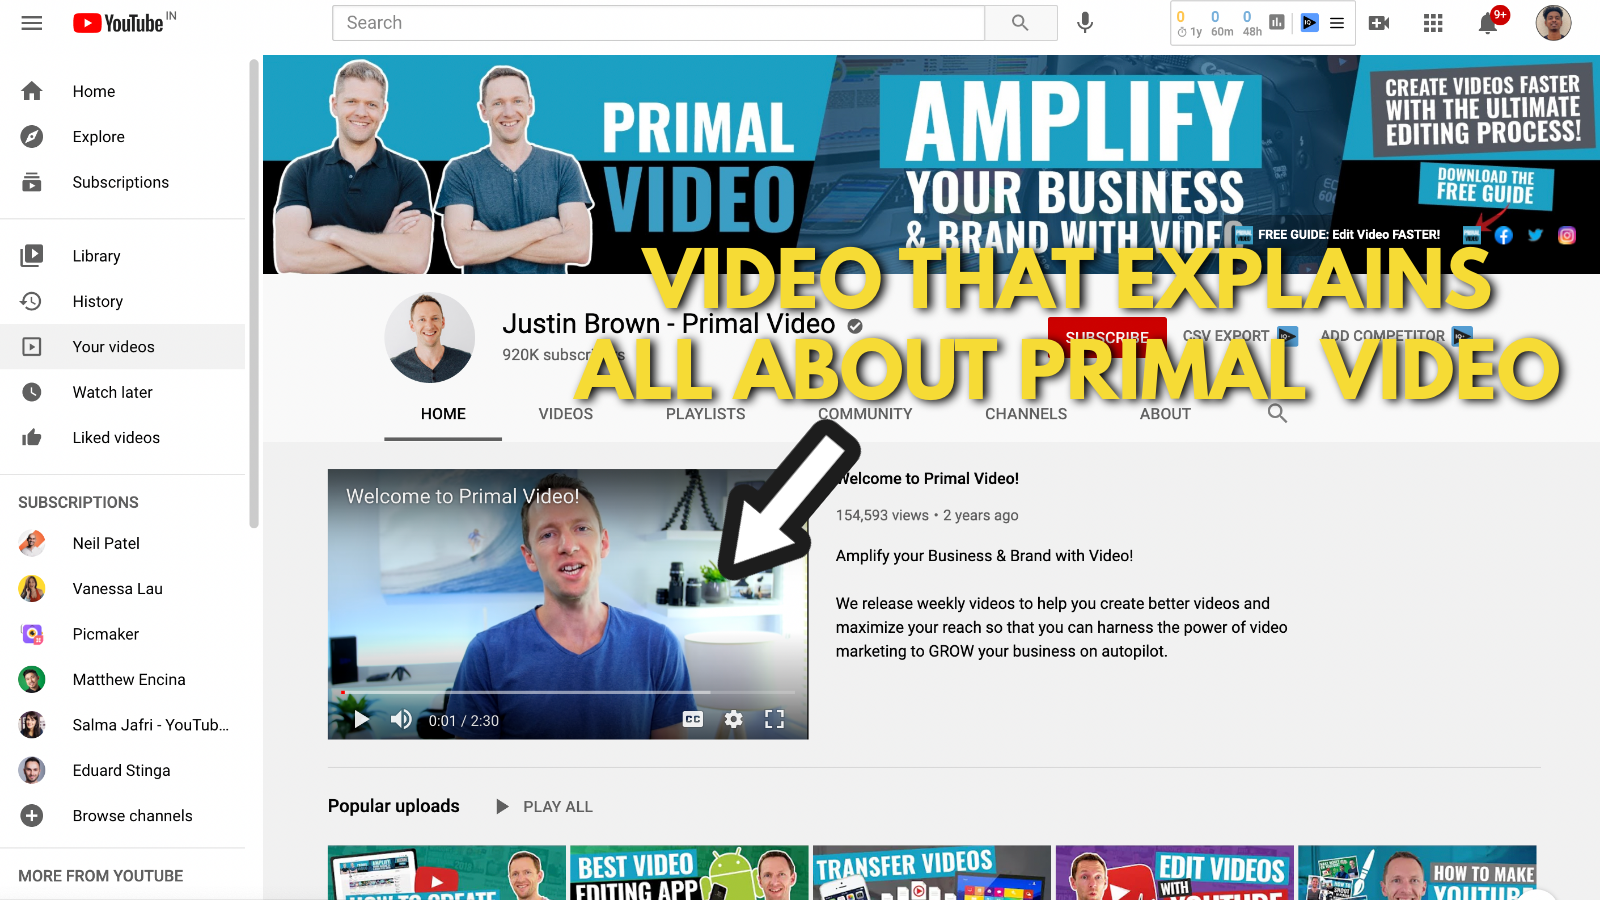 A screenshot of Primal video's YouTube channel 4